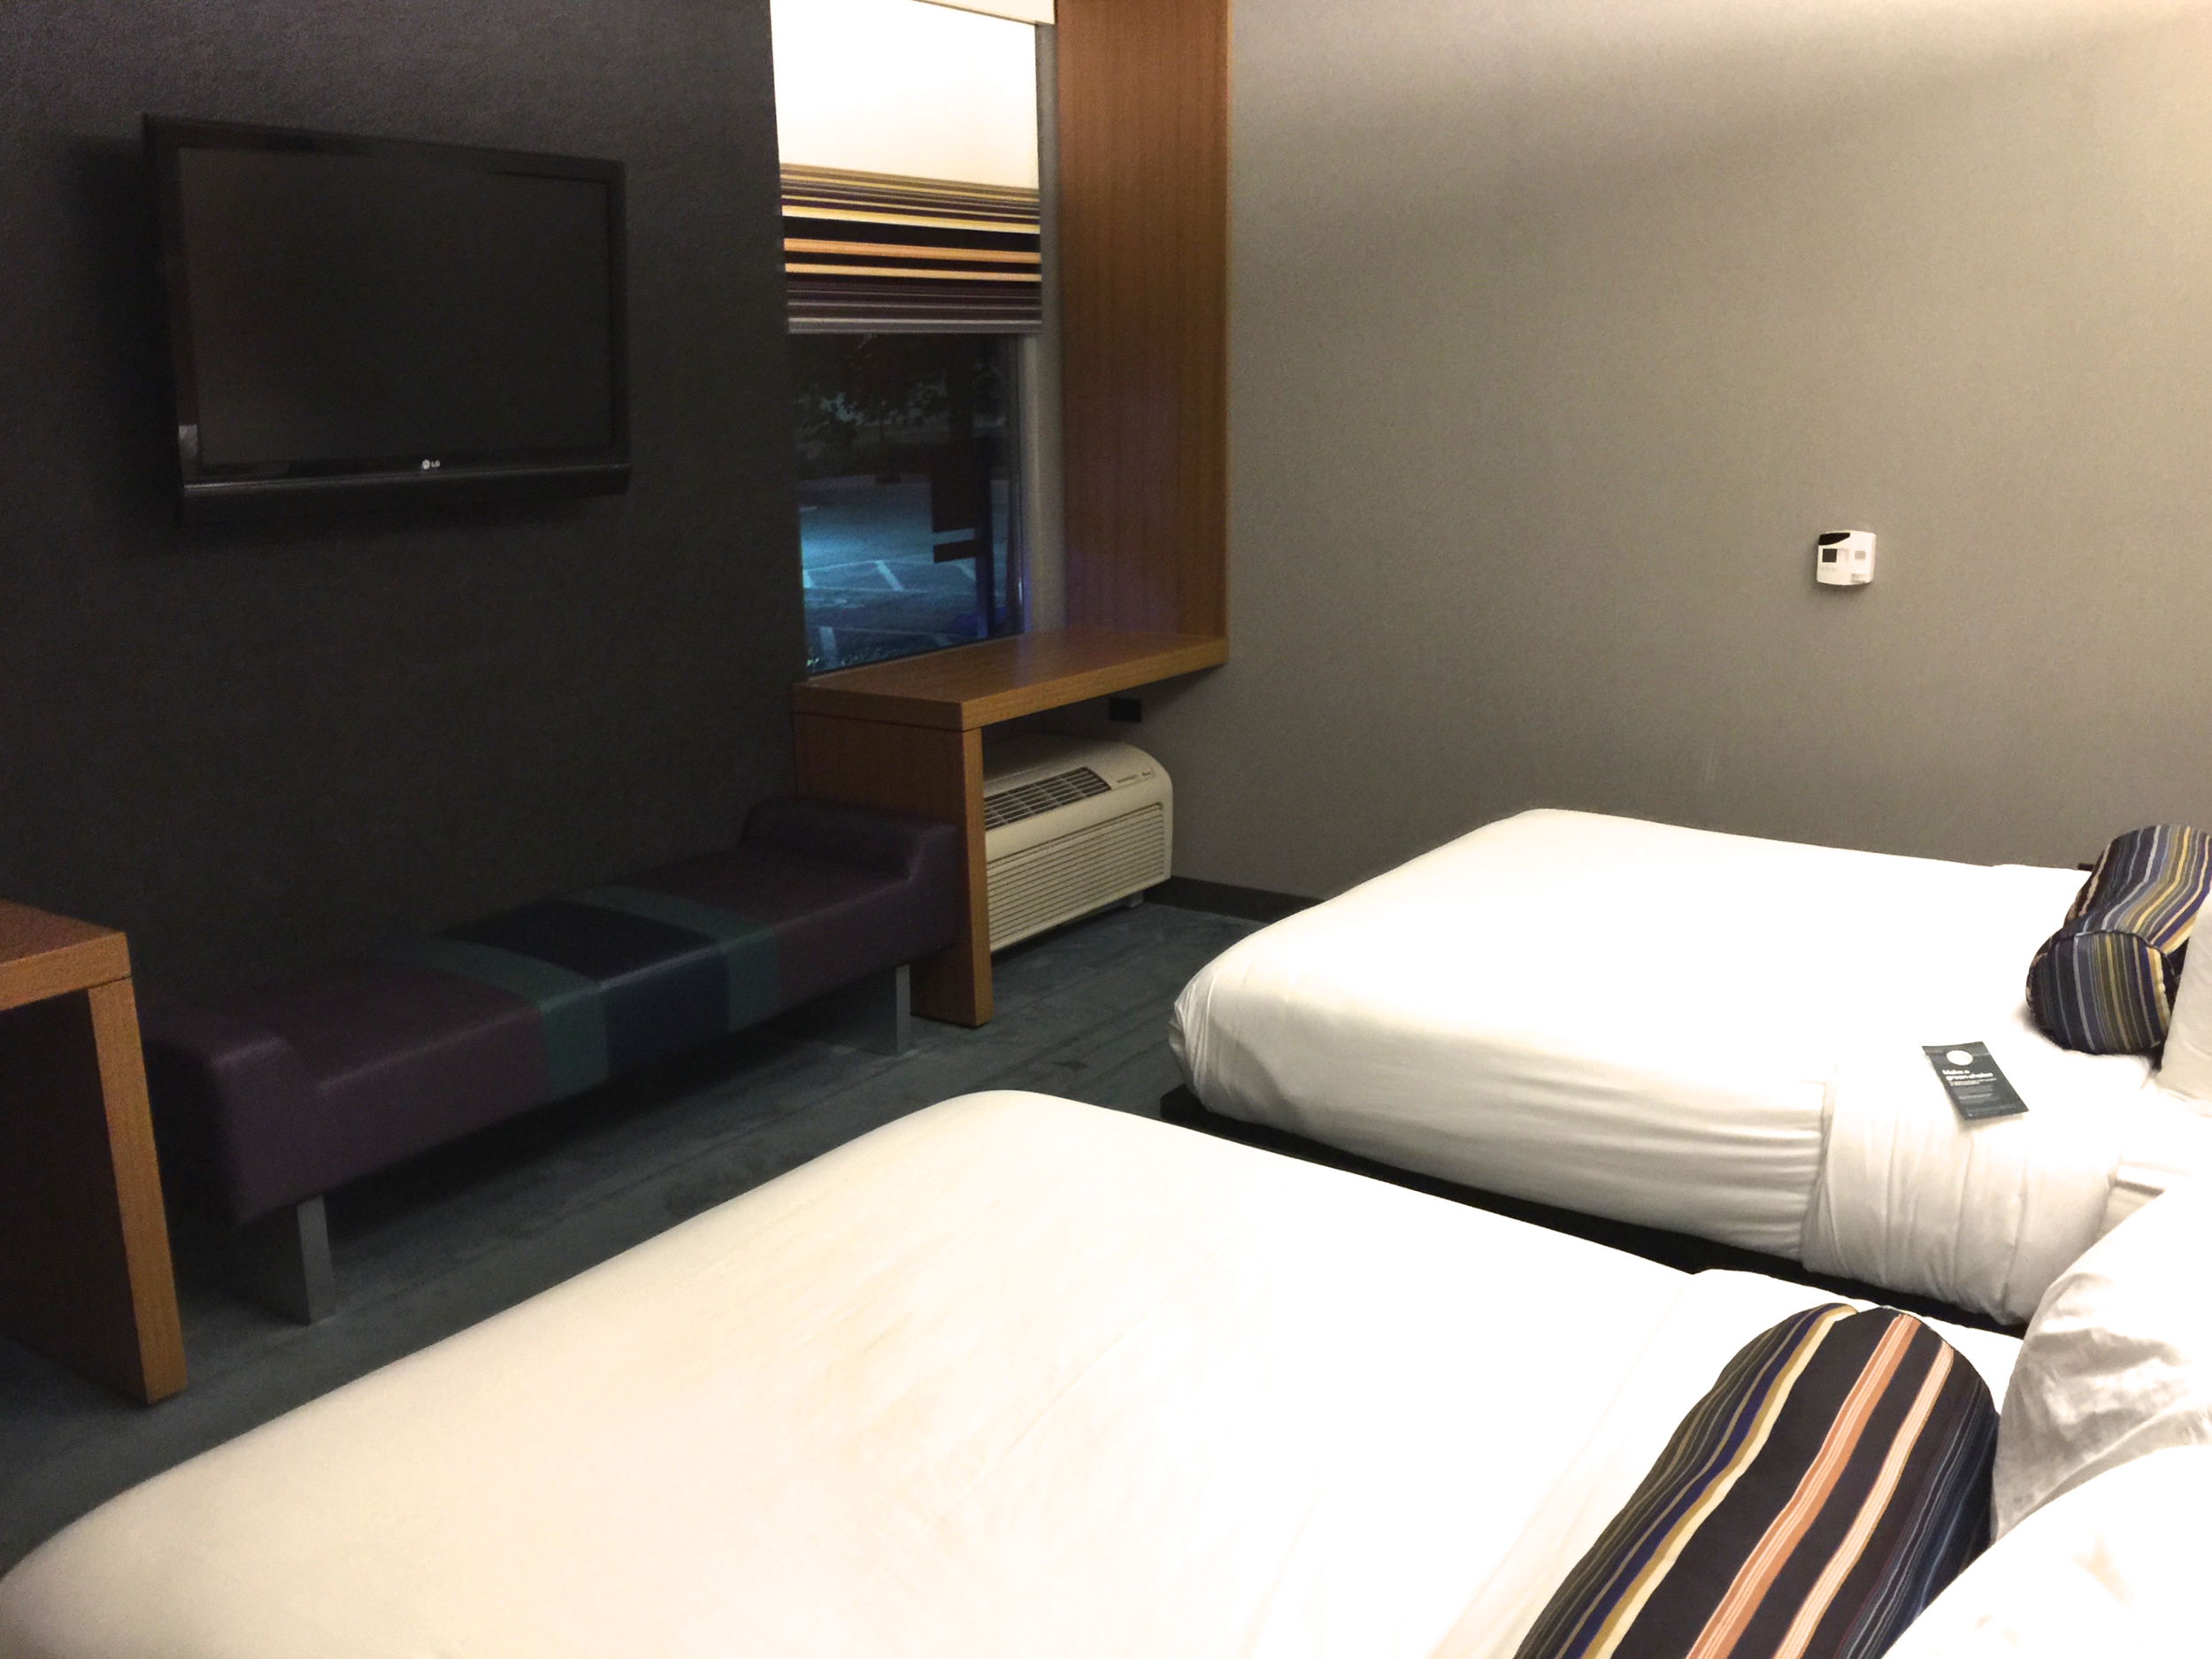 Sleeping area featuring queen platform beds and a bench seat  (click to enlarge)